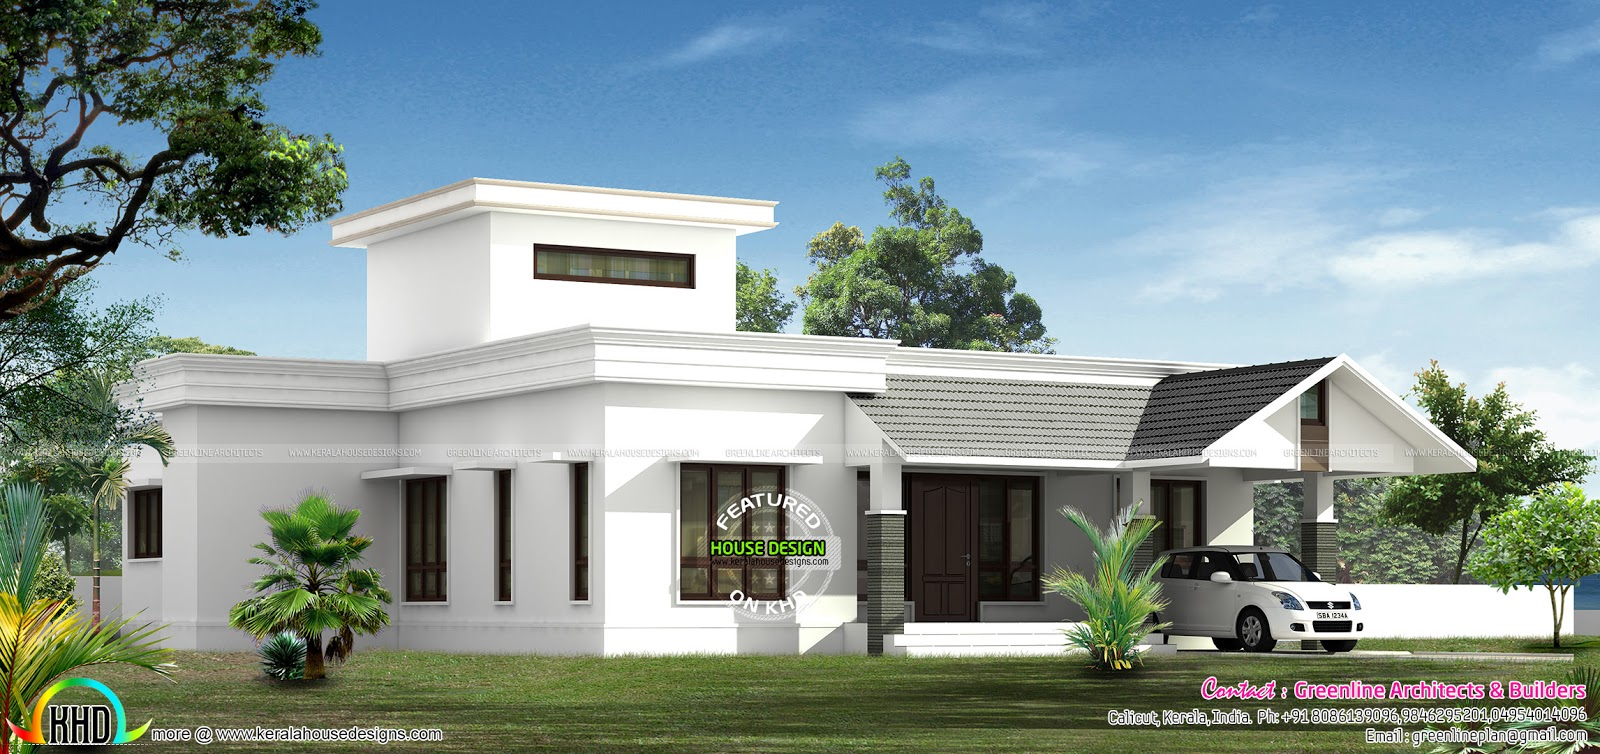 Low budjet single floor house design two side views for Side view house plans